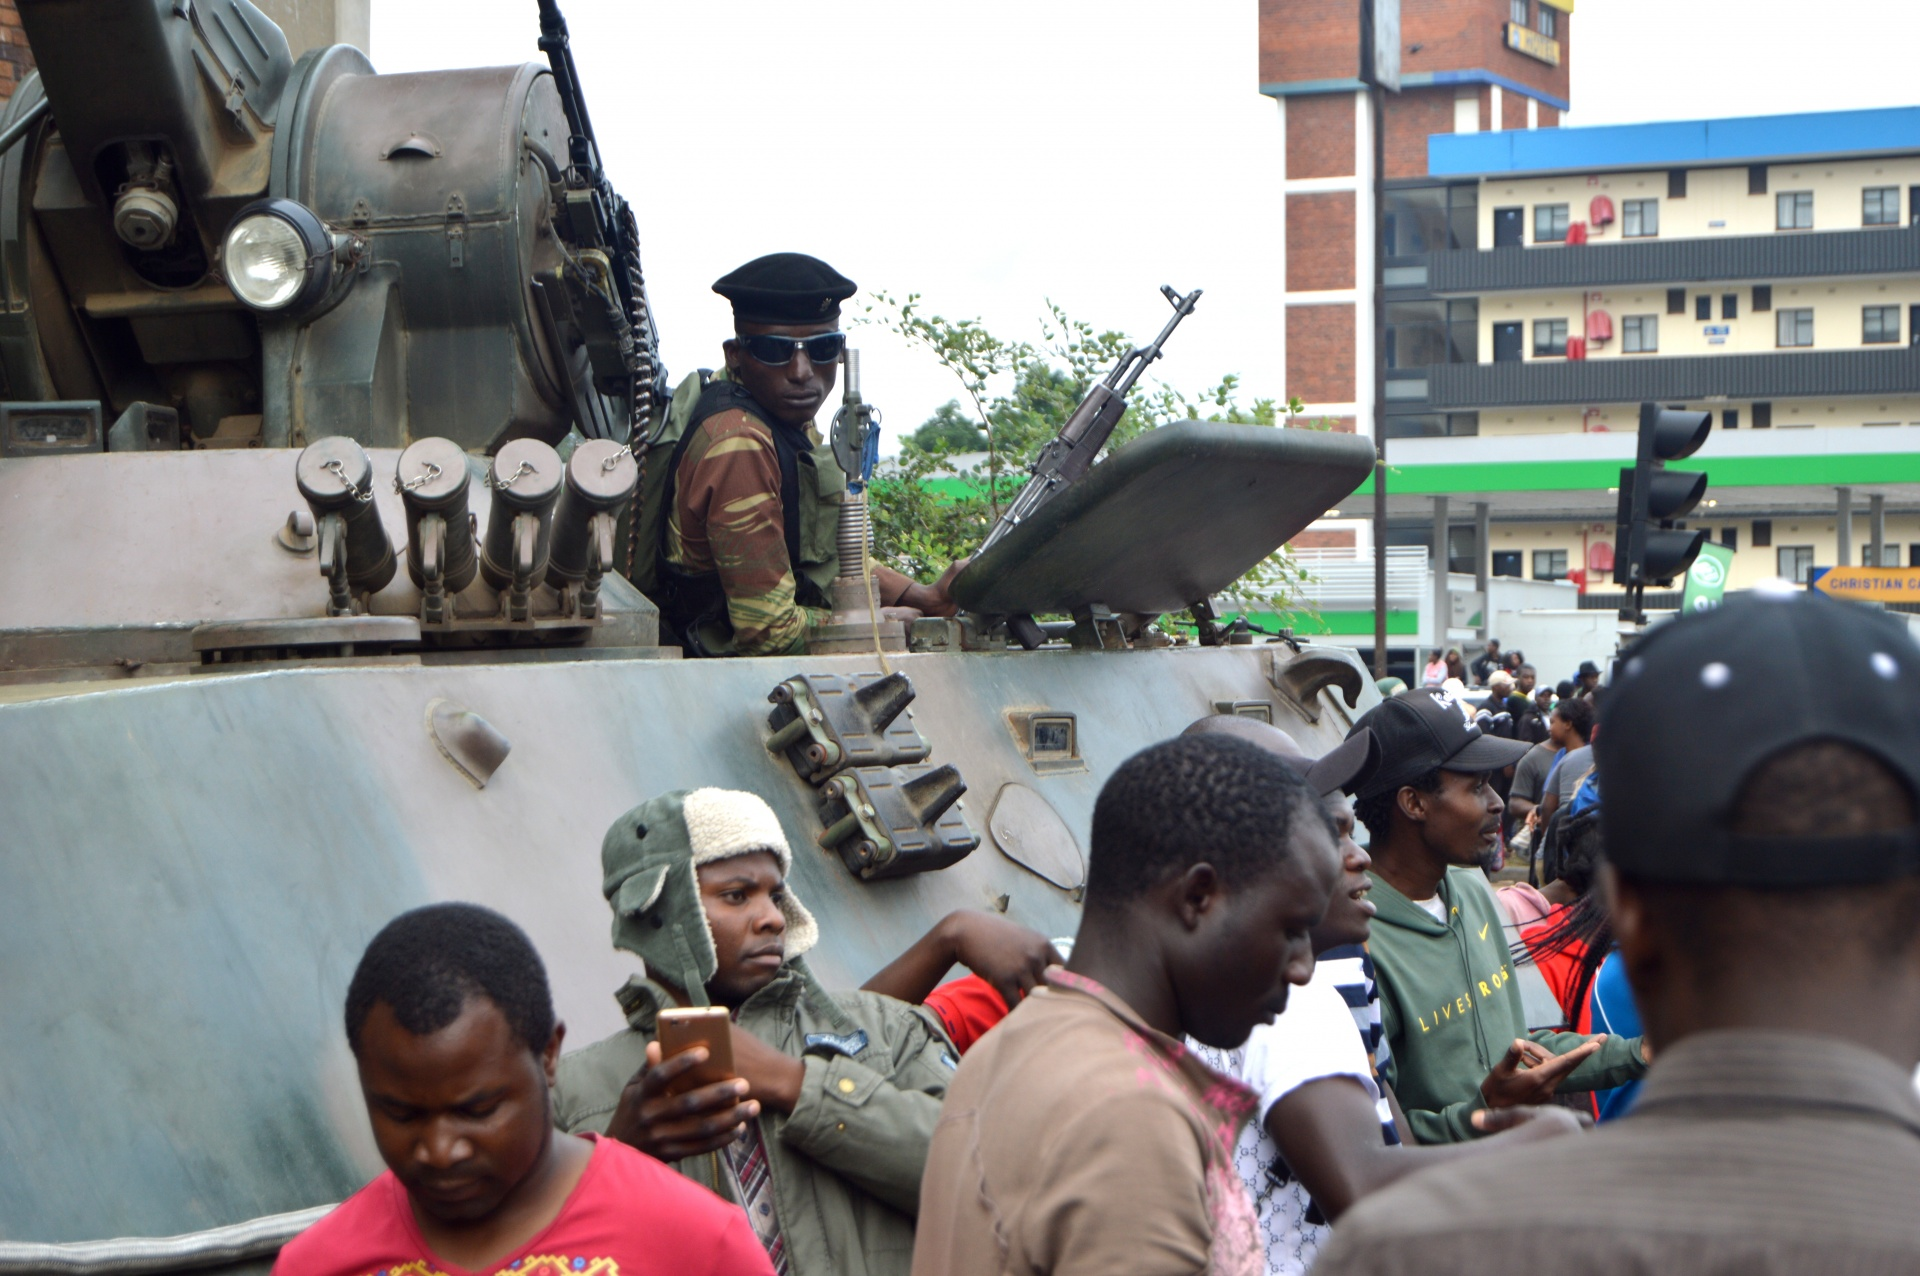 Human rights groups demand Zimbabwe stop violent repression of protesters and respect fundamental freedoms